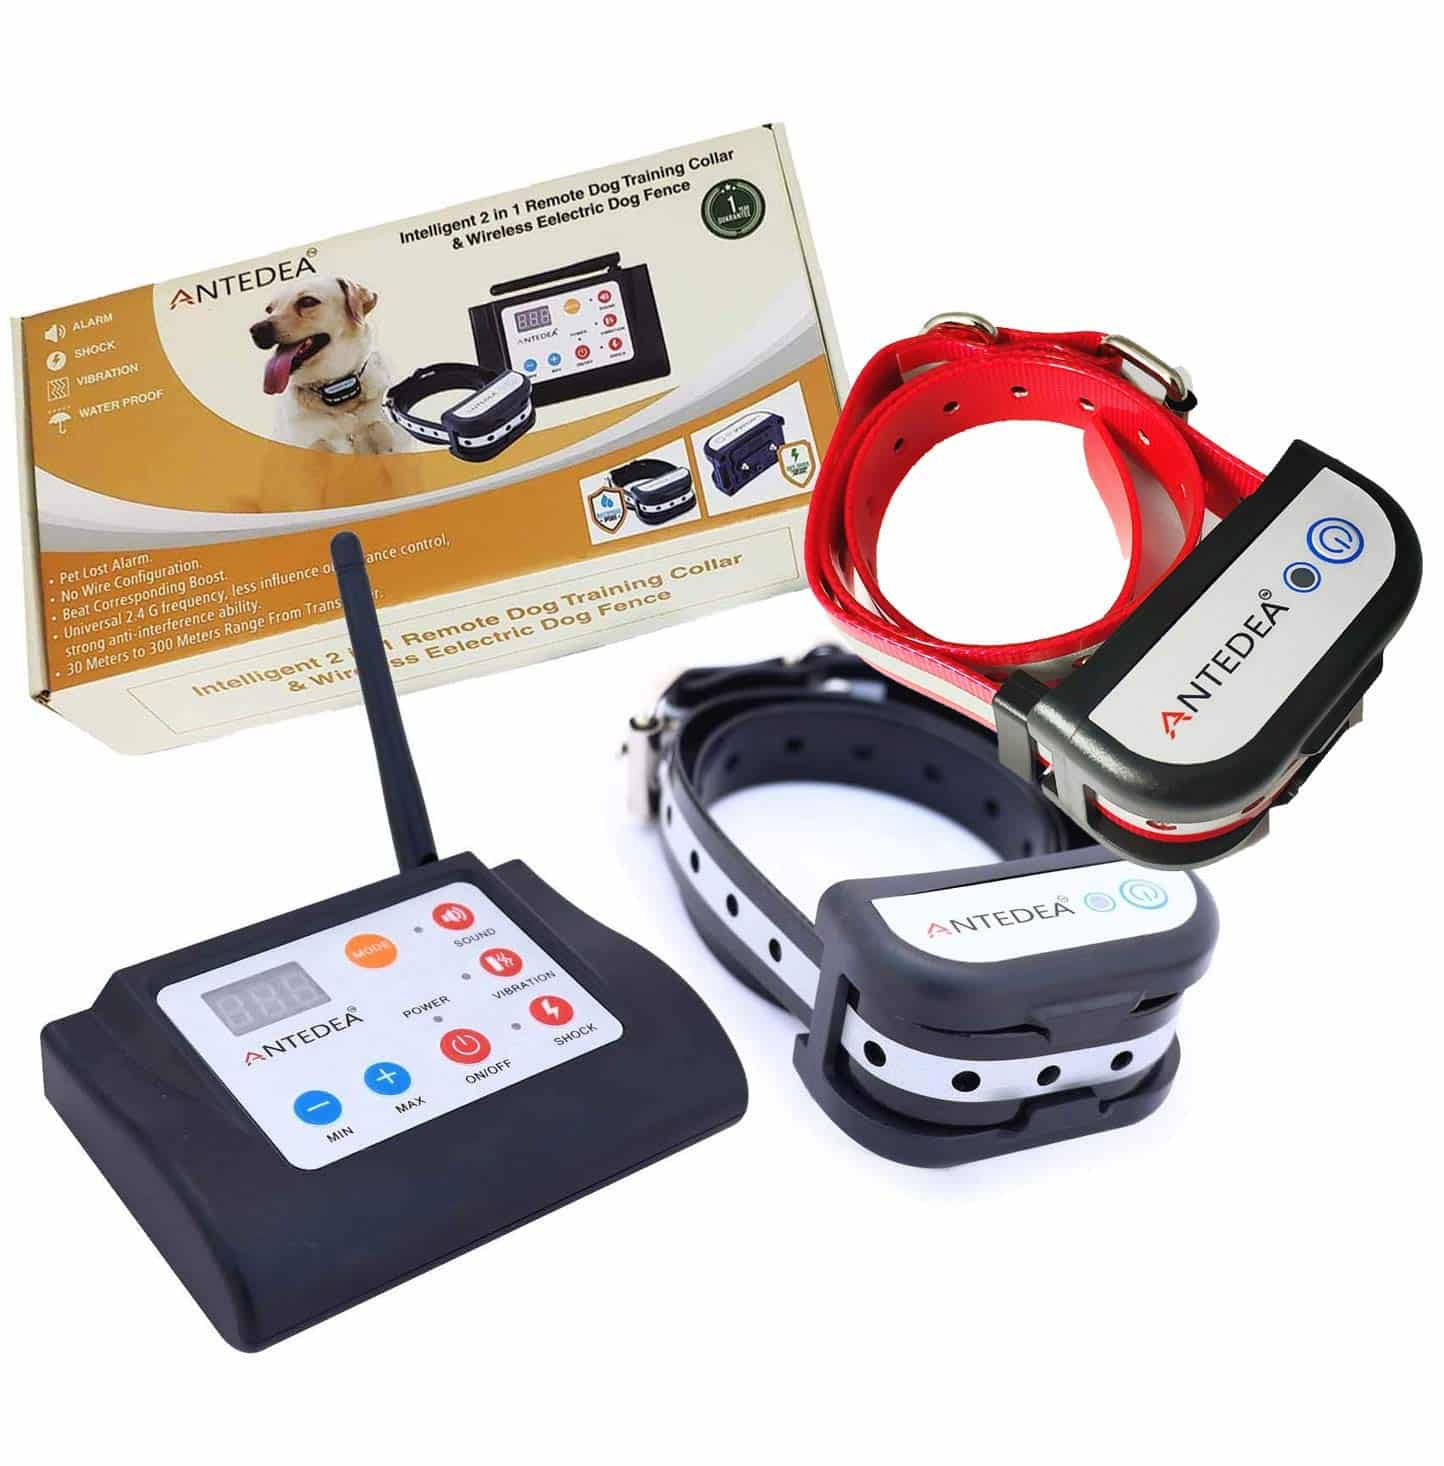 ANTEDEA Wireless Dog Fence